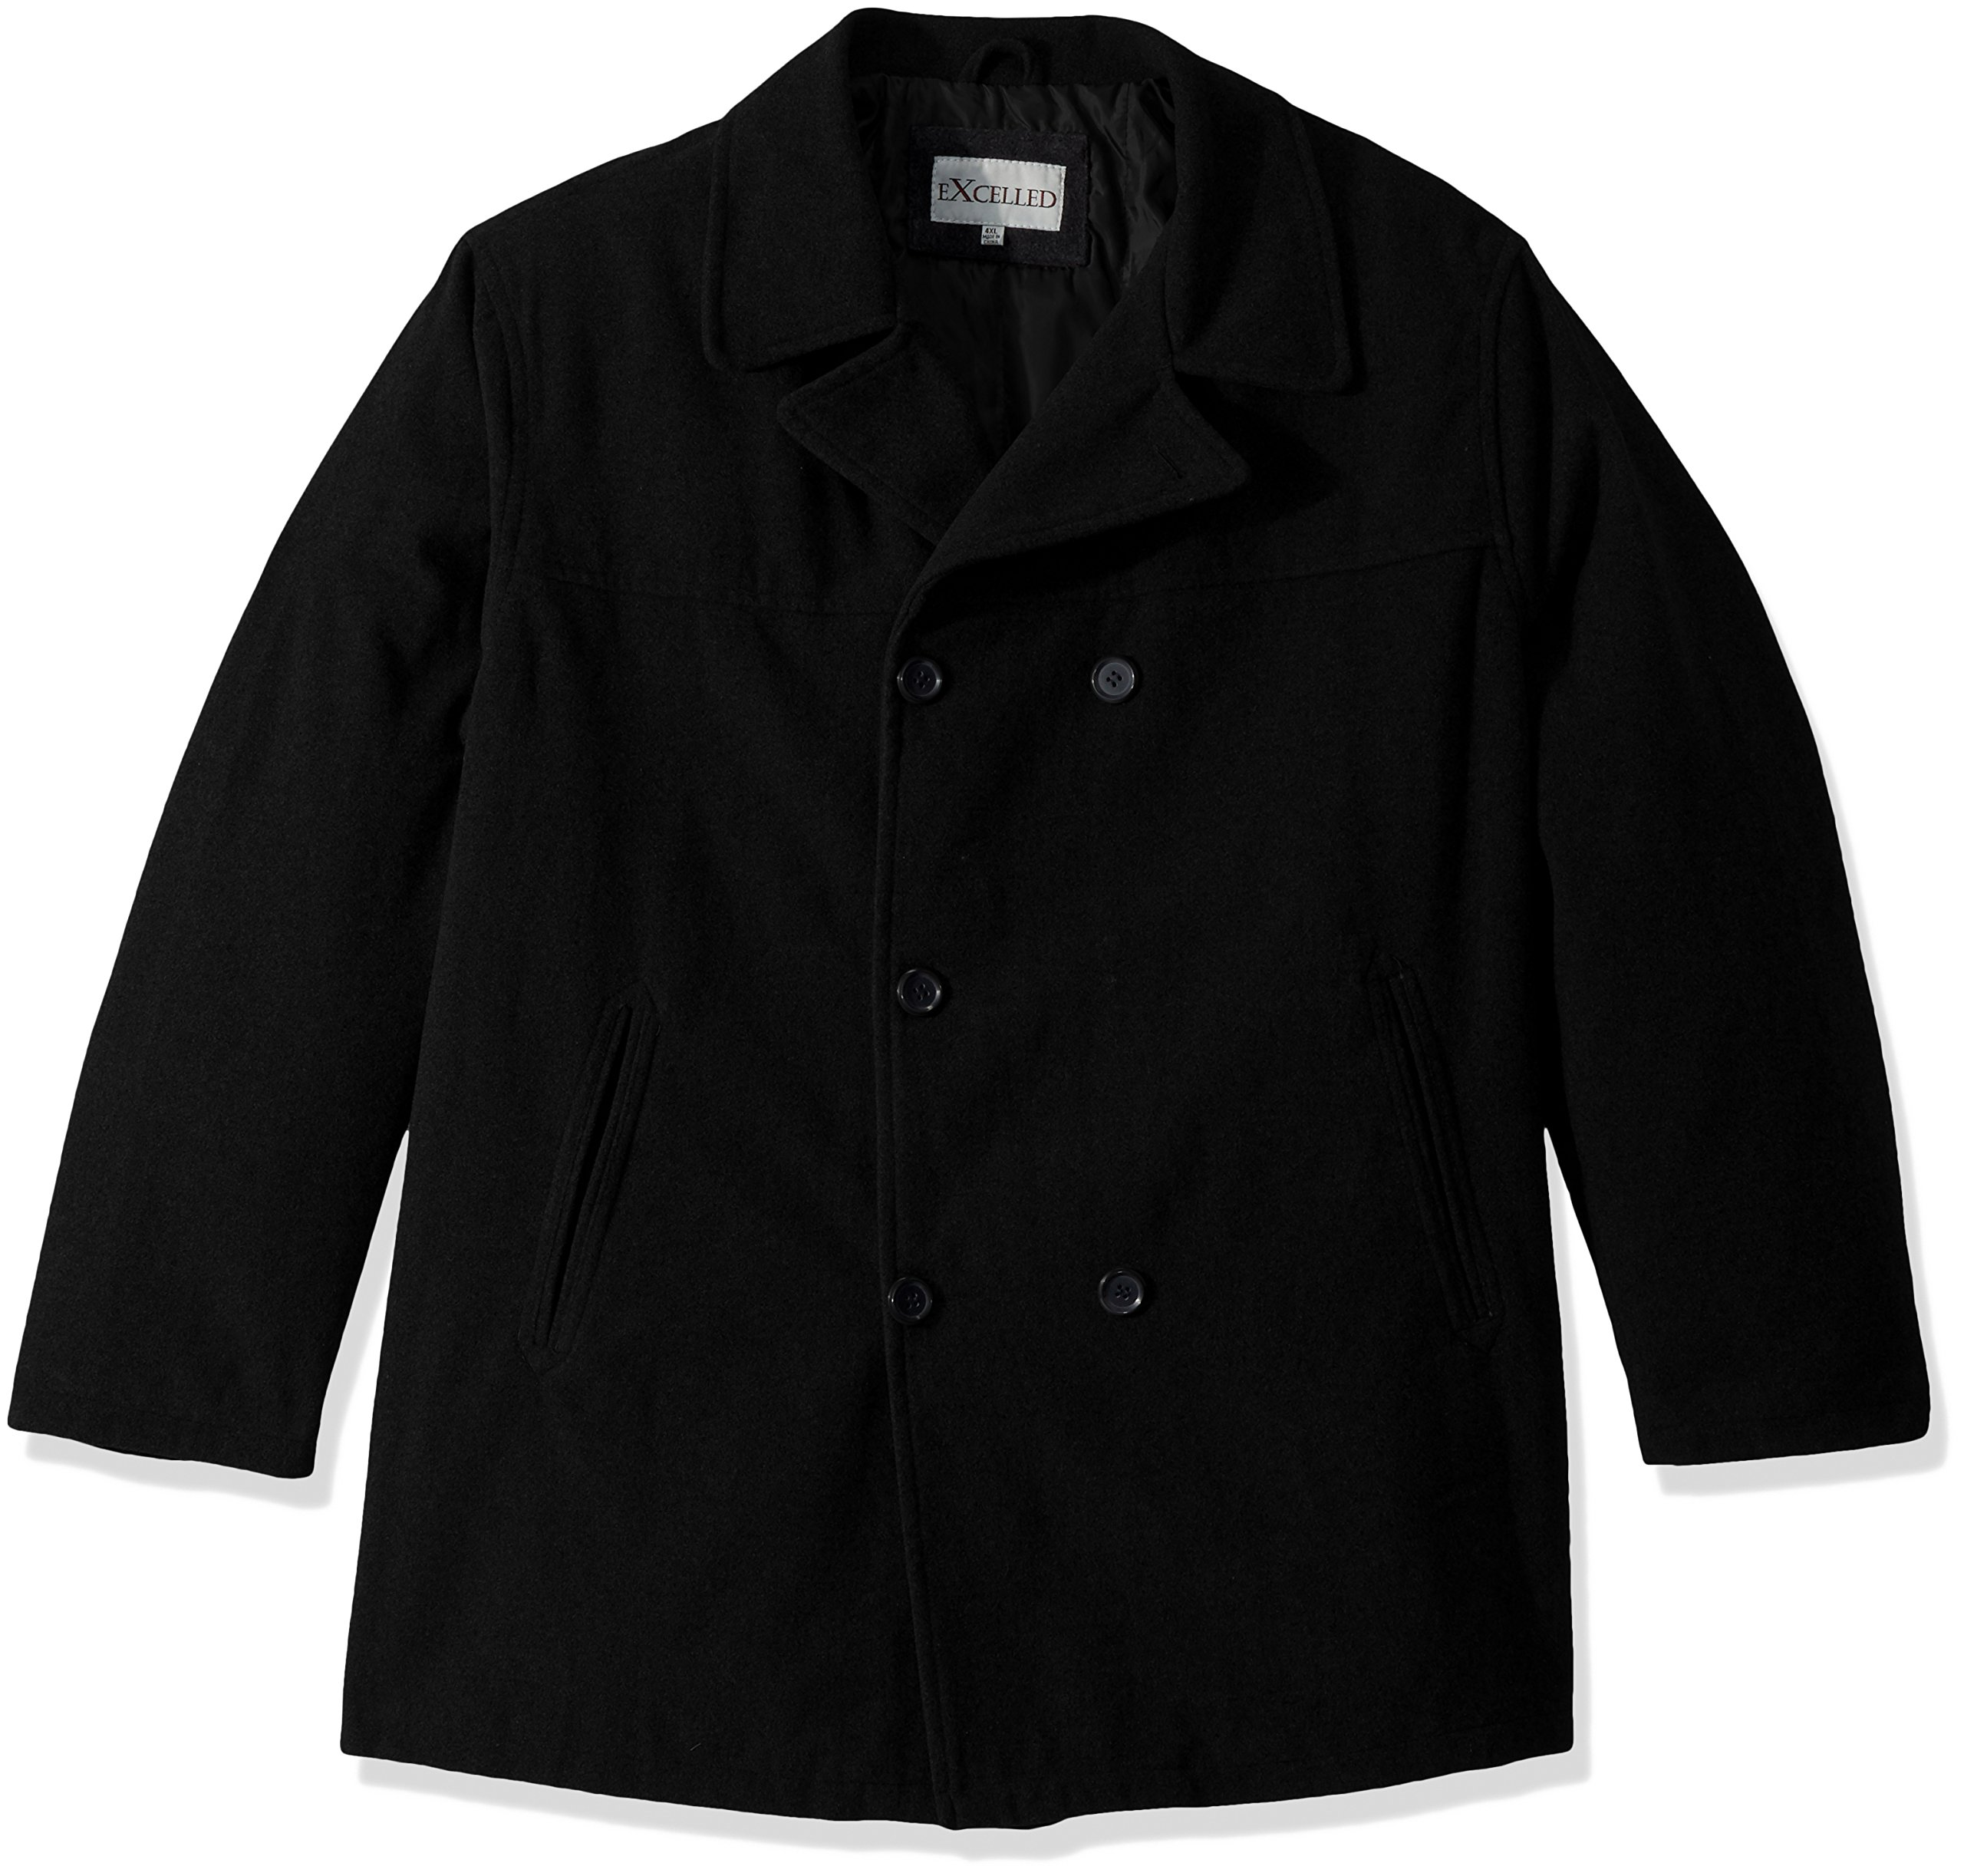 Excelled Men's Big and Tall Polyester Peacoat, Black, 4X